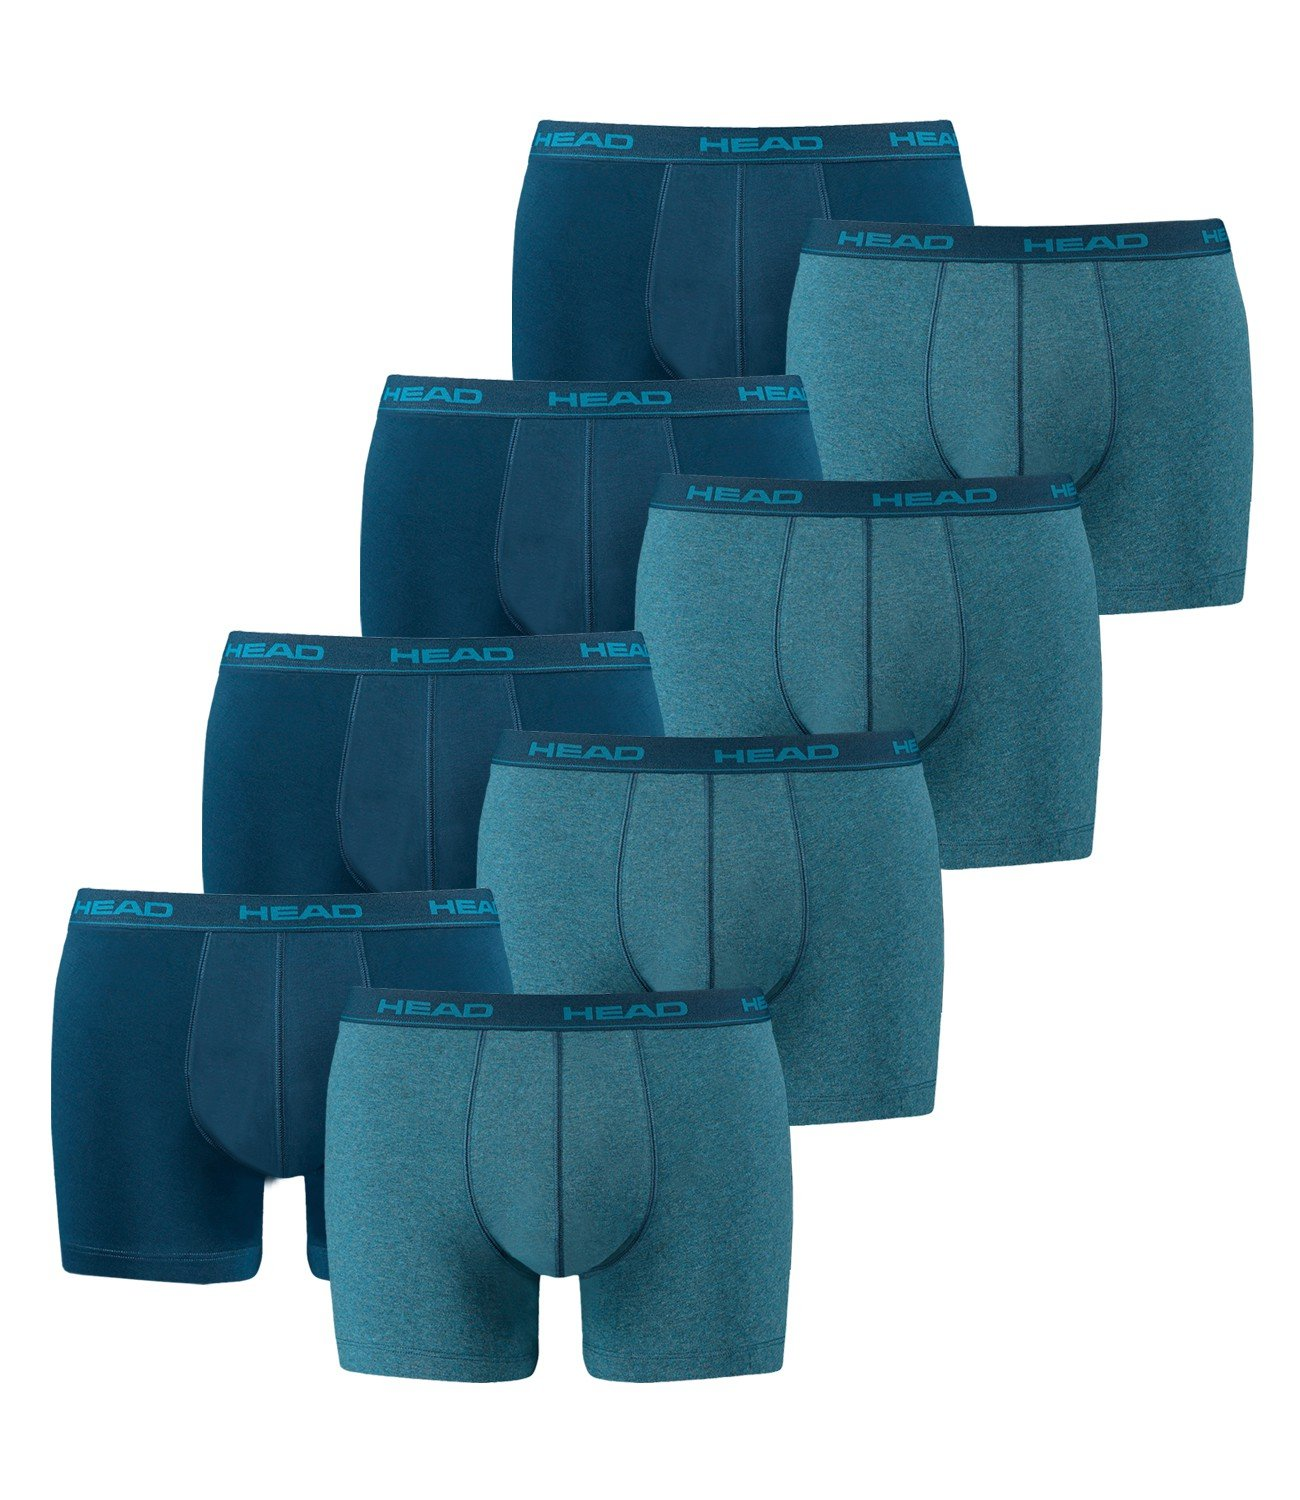 HEAD Men's Boxer Shorts 841001001 – Pack of 8